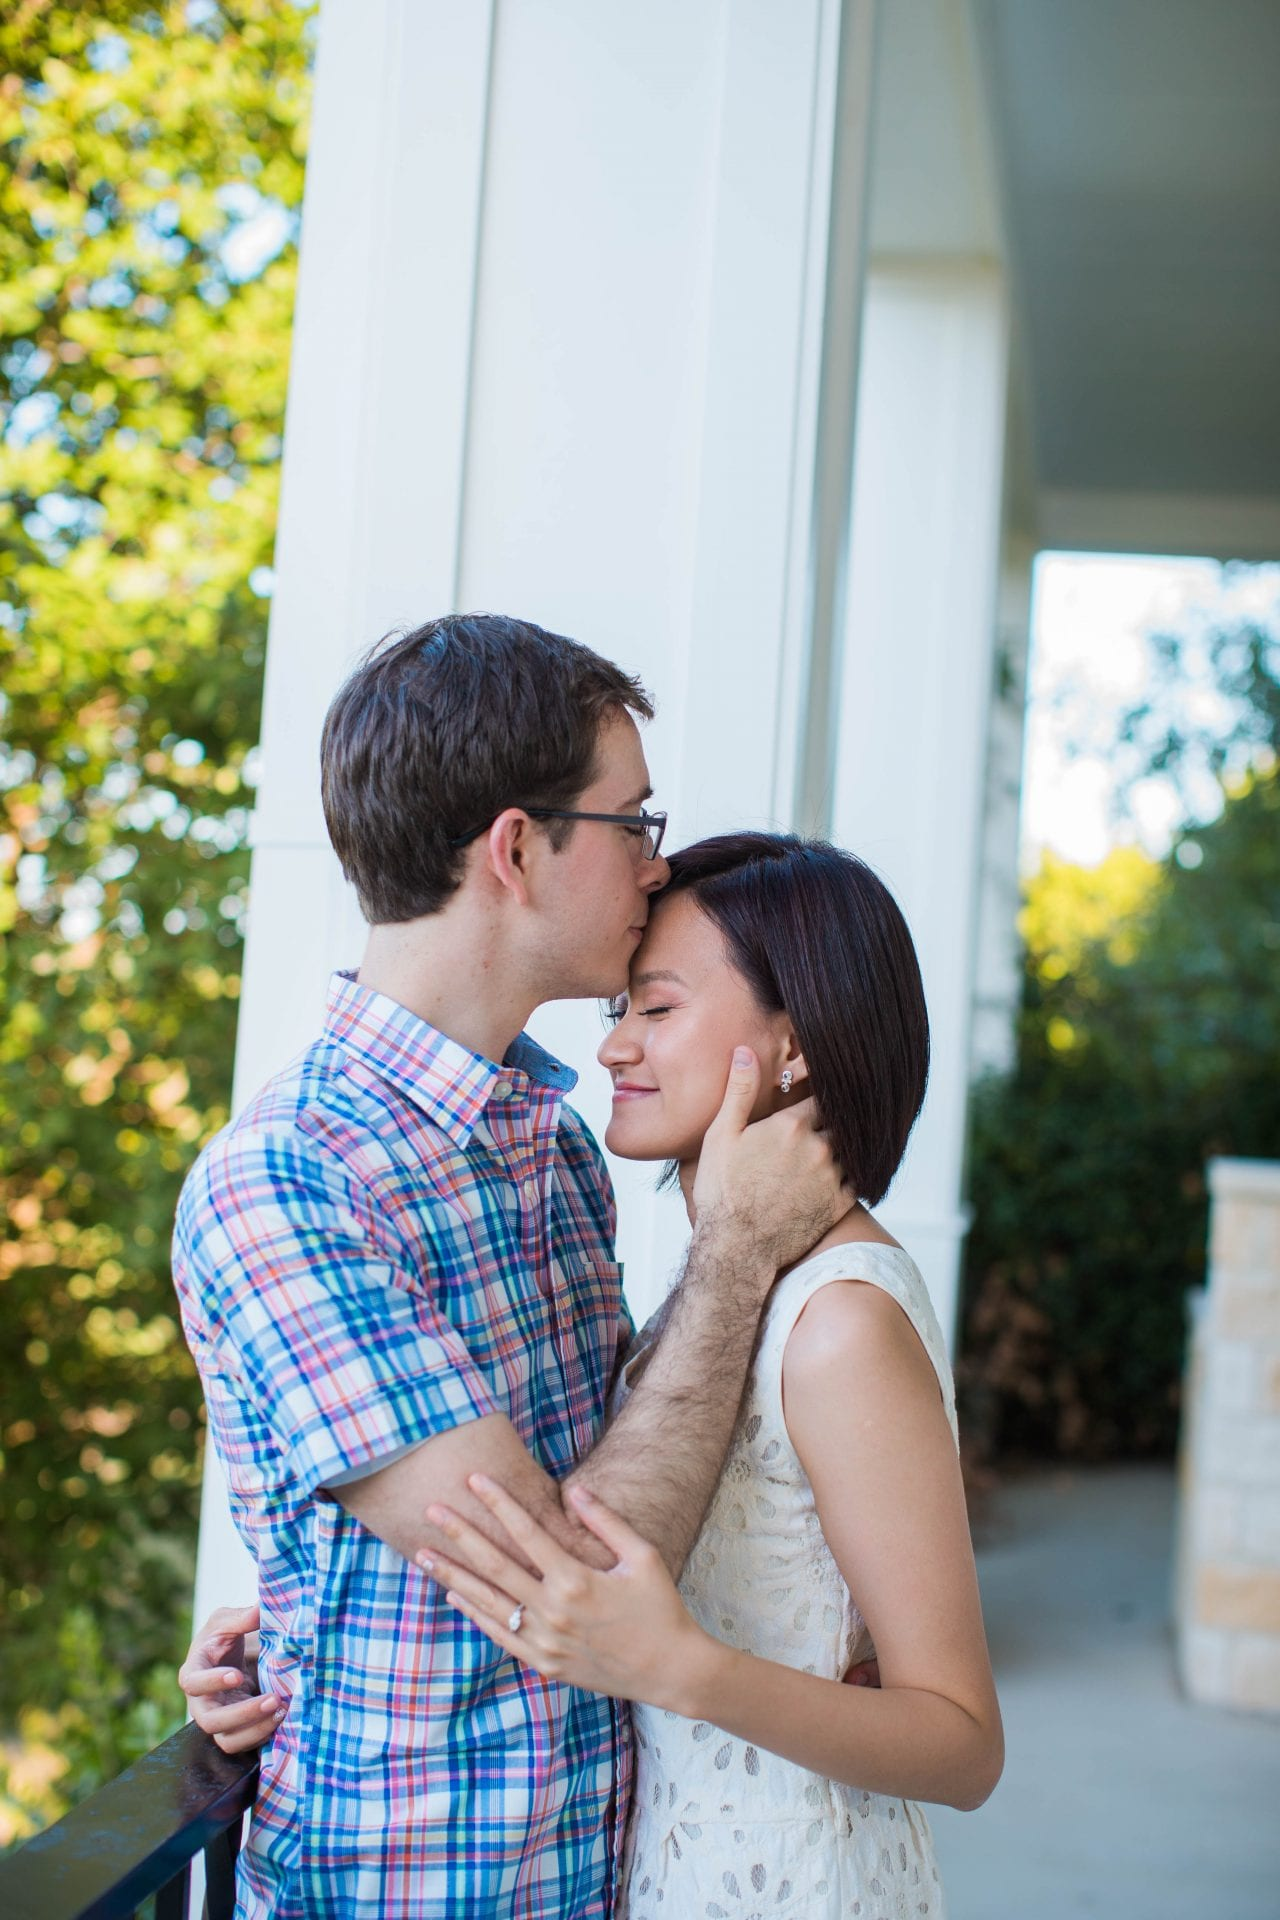 Josh and Tina engagement session at Kendall plantation kiss on the porch